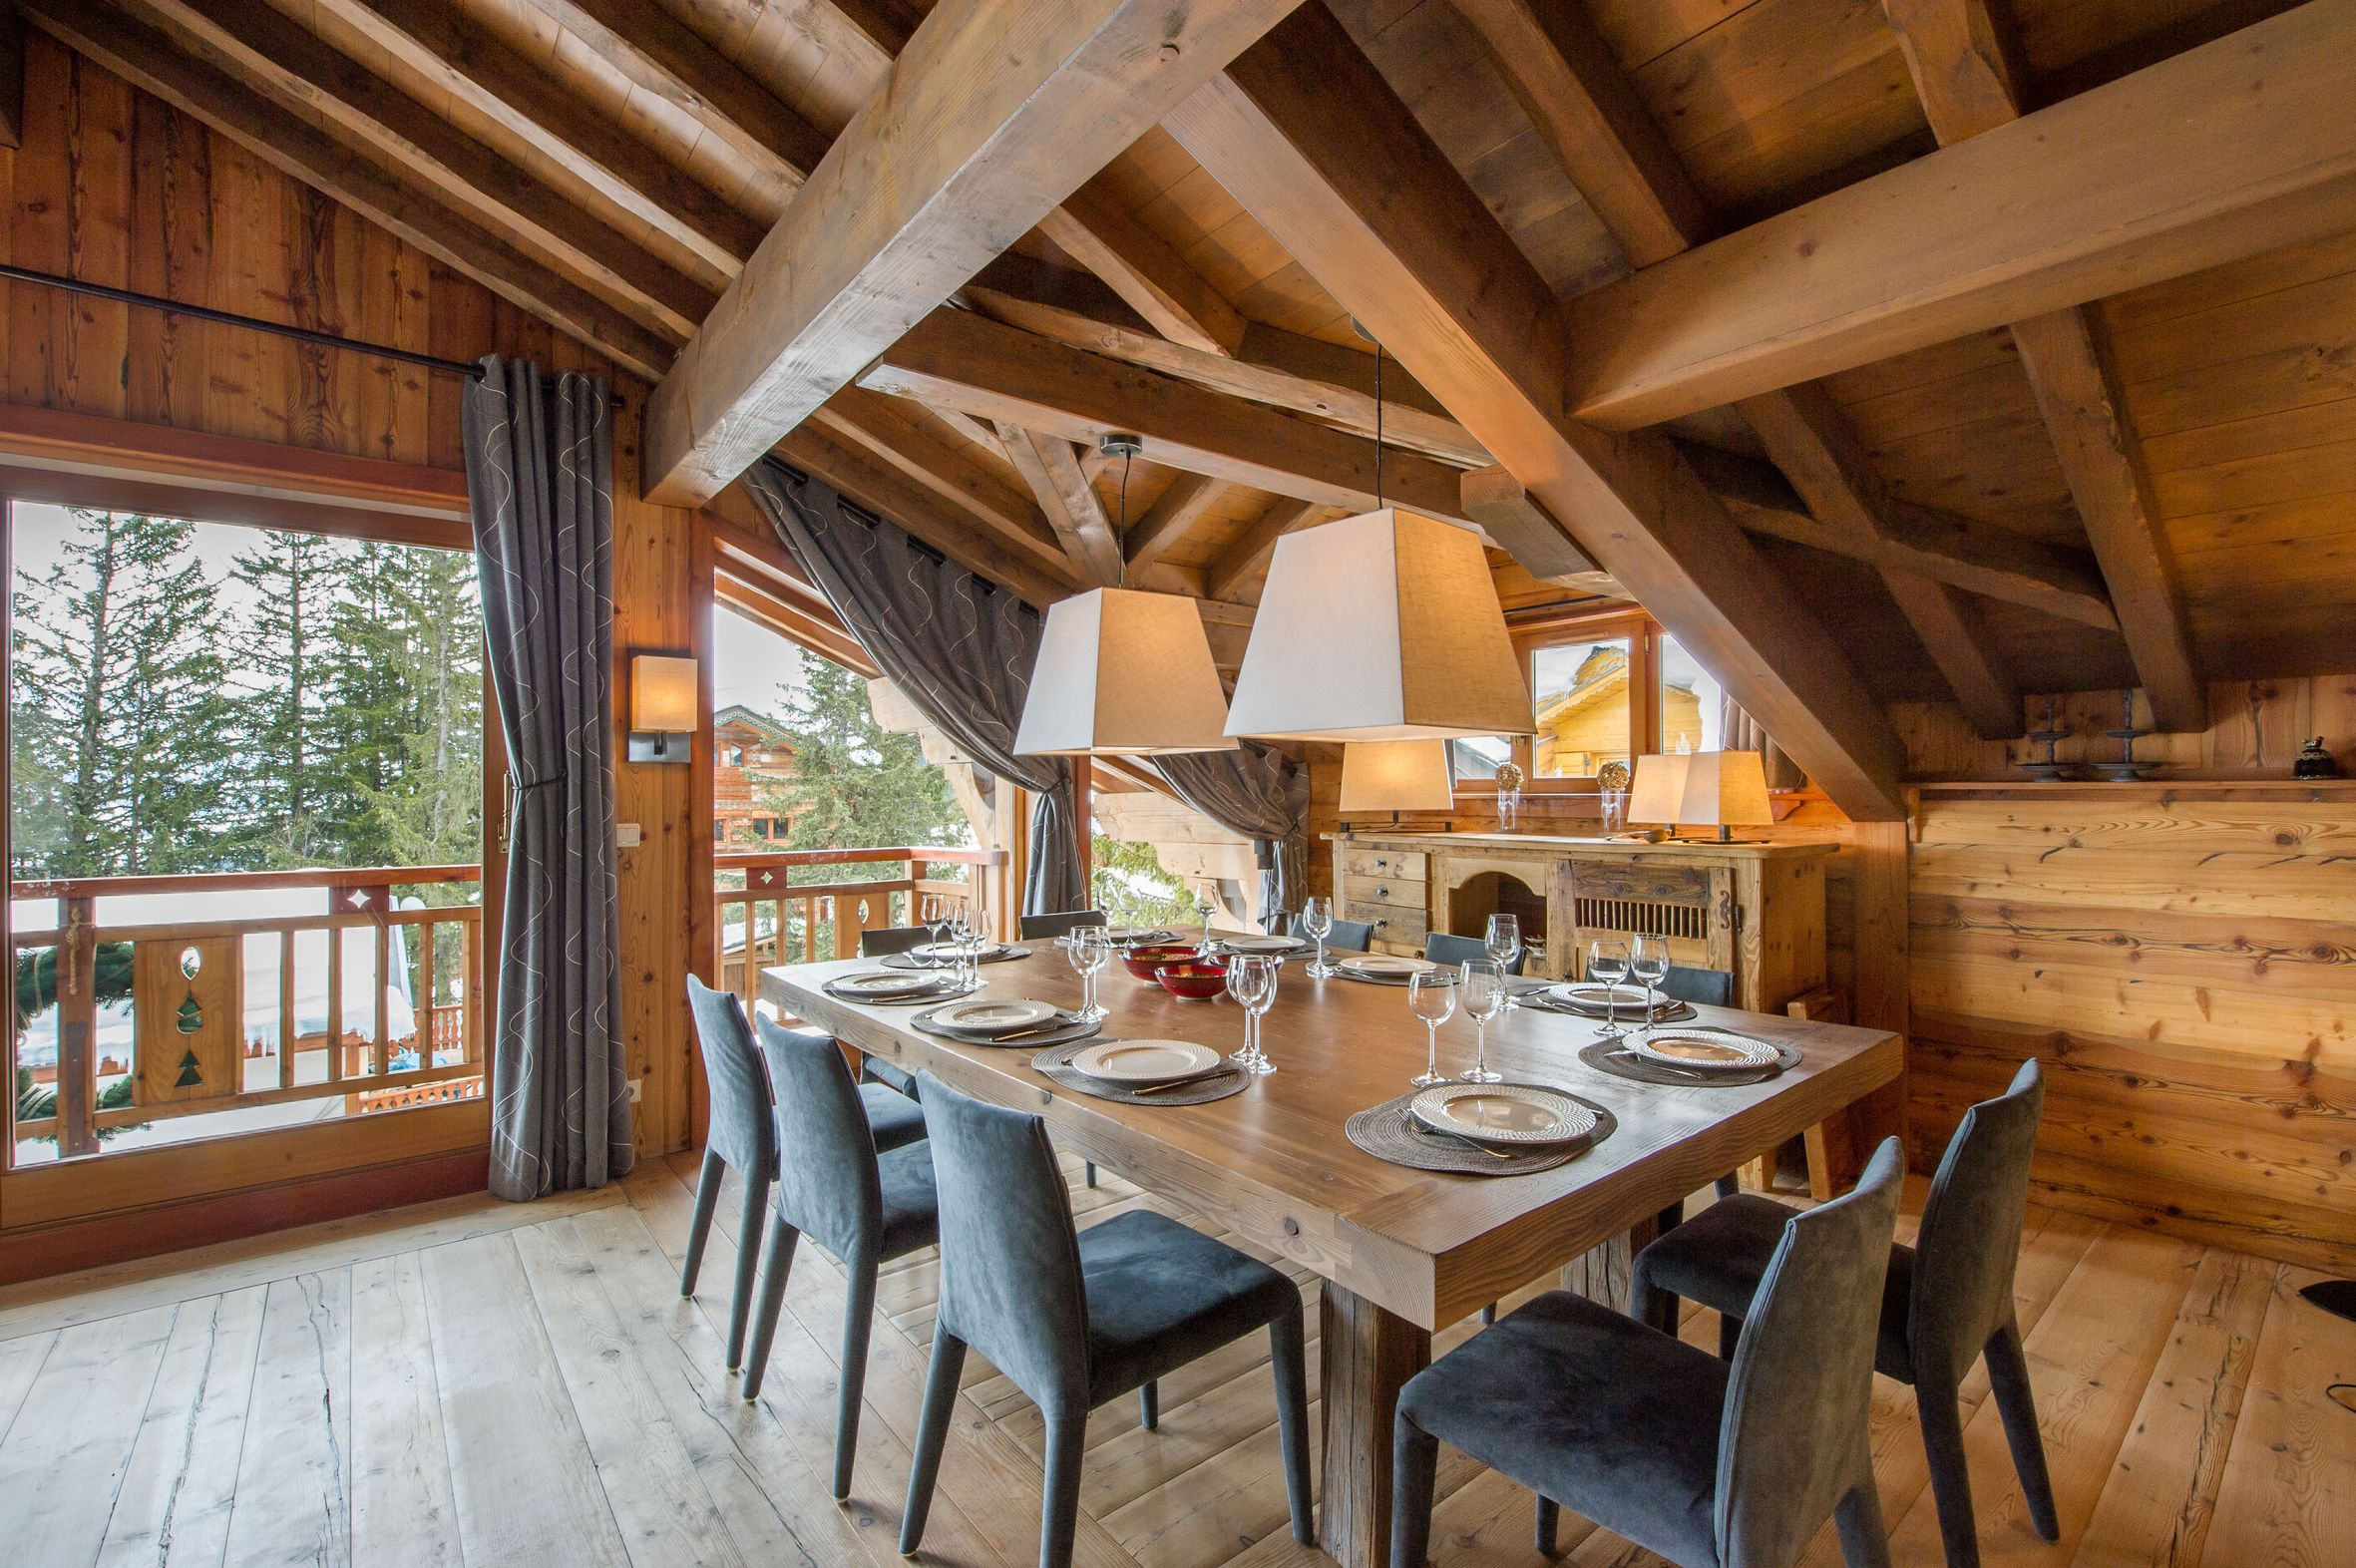 Location chalet courchevel 1850 12 personnes monic1204 - Chalet a la montagne ...